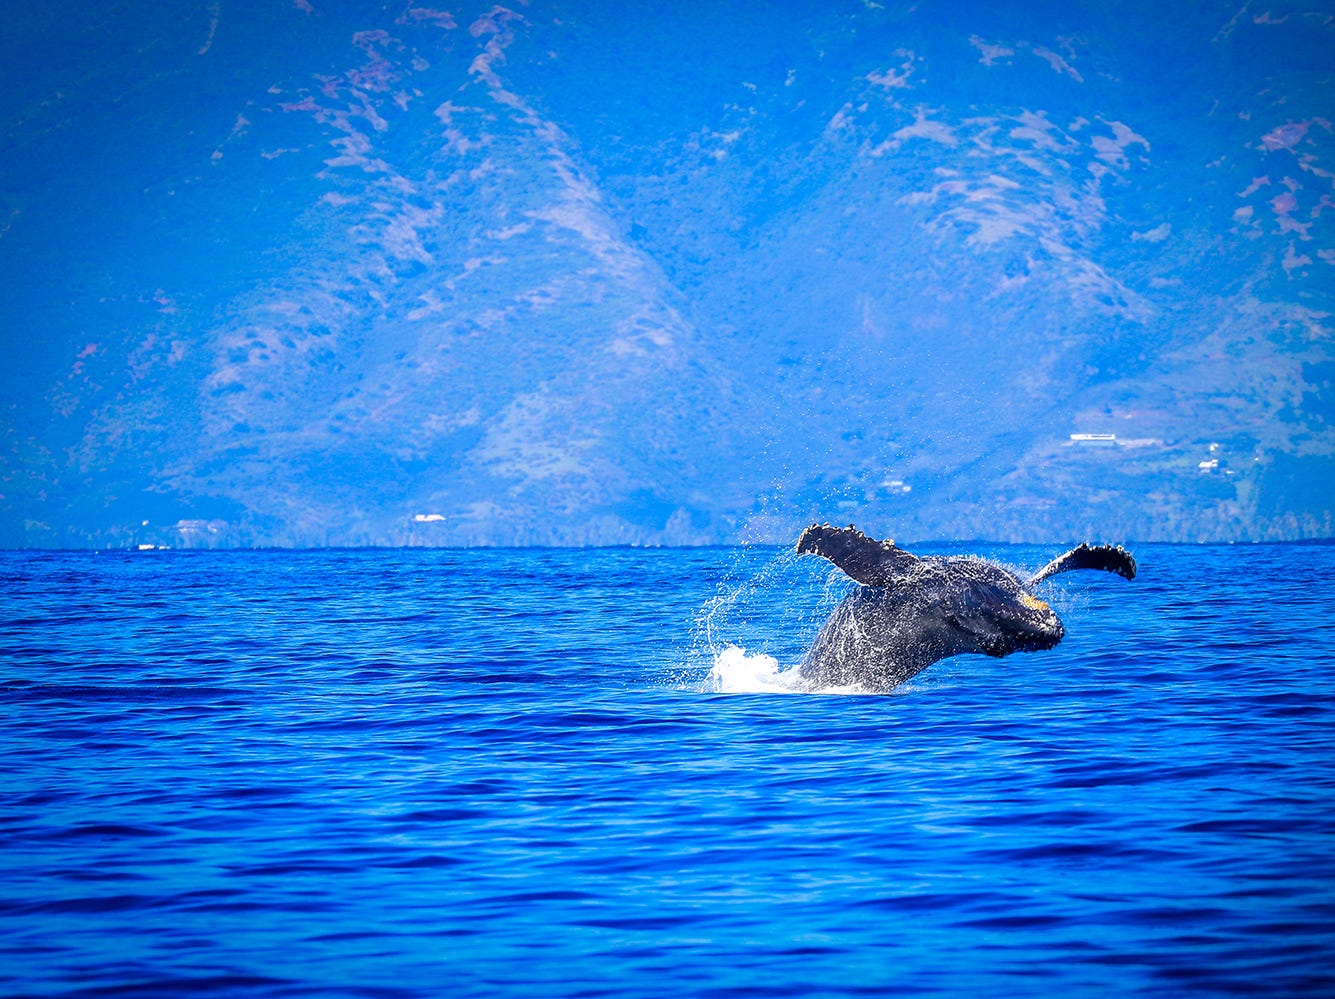 Whale season takes place November through April with humpback whales (called kohola in Hawaiian) migrating to Hawaii to breed and nurse their young. Travelers can play I-Spy from their guestroom lanai and see these giant mammals spouting and breaching just offshore from Ka'anapali Beach.